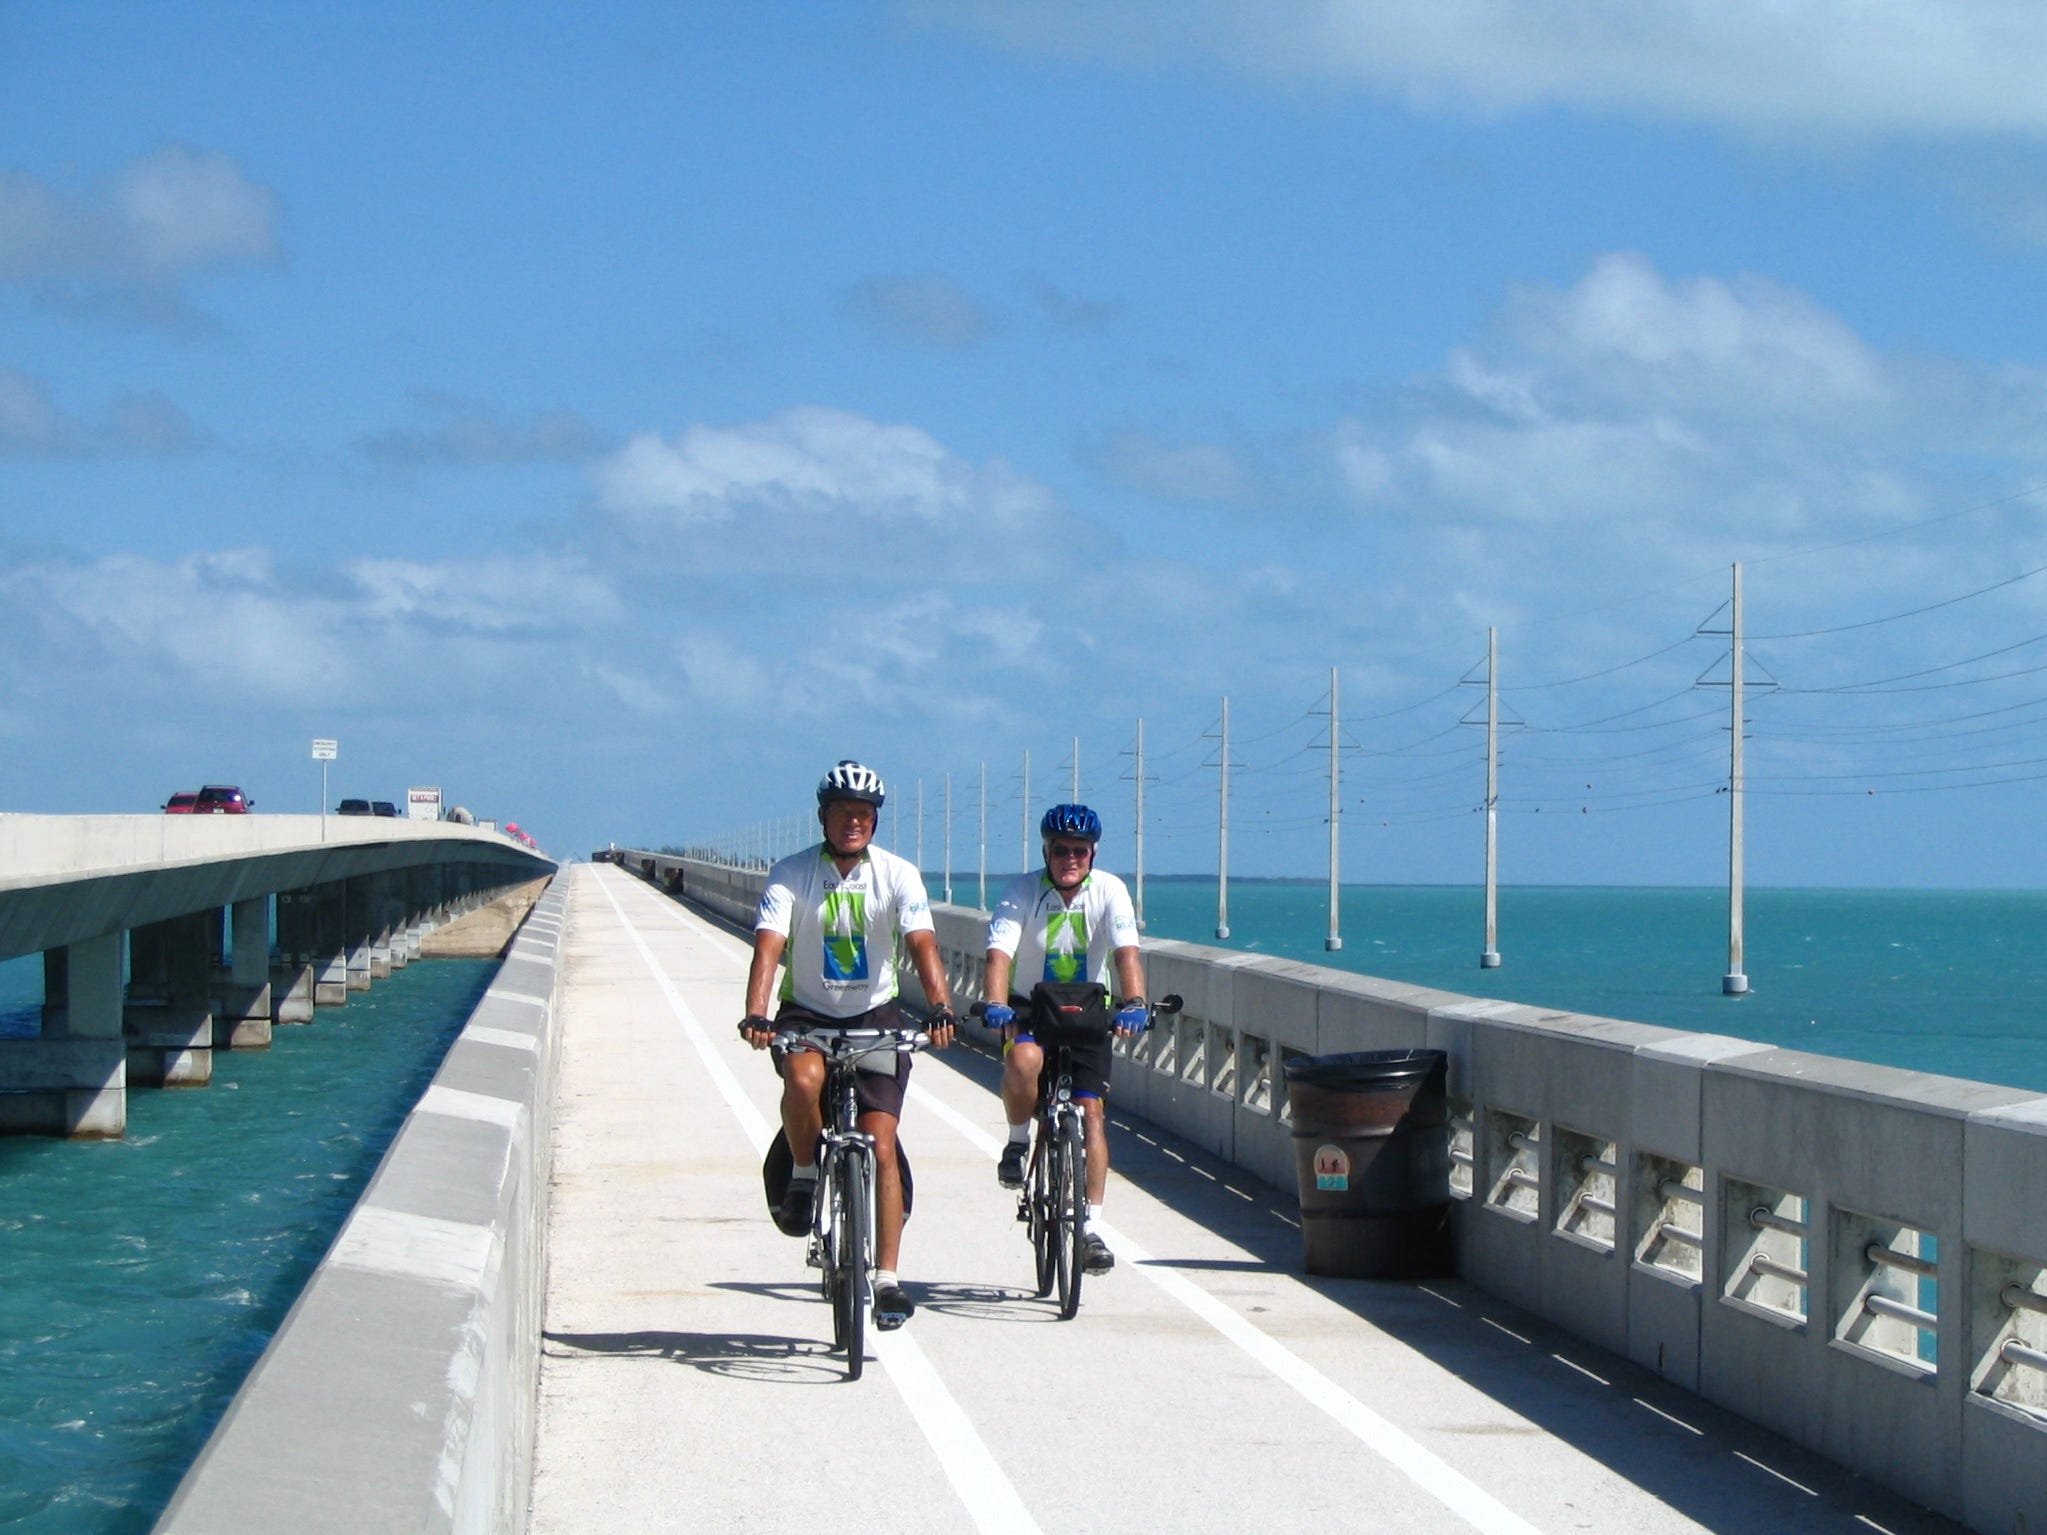 For an epic ride, take the 106-mile Florida Keys Overseas Heritage Trail from Key Largo to Key West, over 23 bridges.